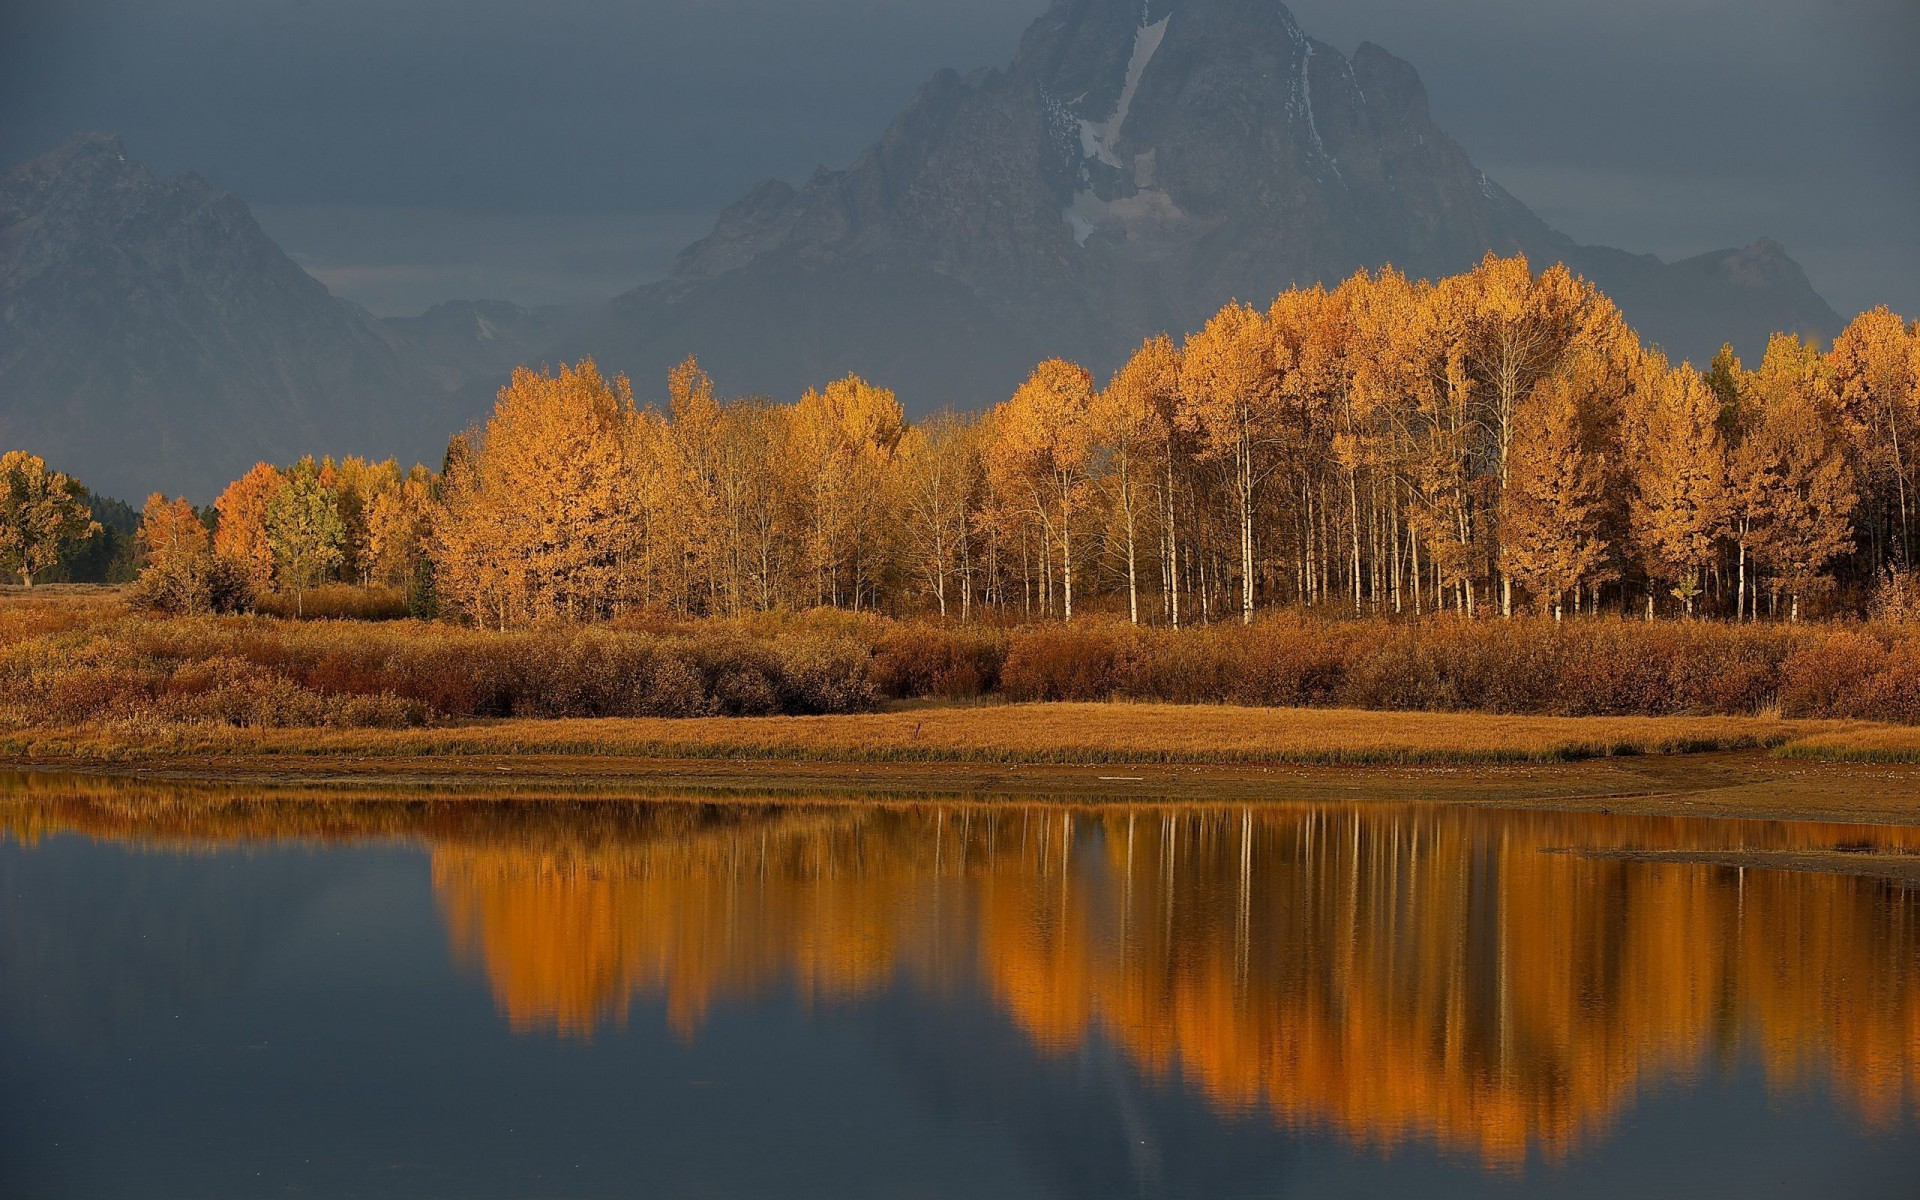 Animated Sunset Wallpaper Jackson Hole Valley Wyoming Wallpapers Jackson Hole